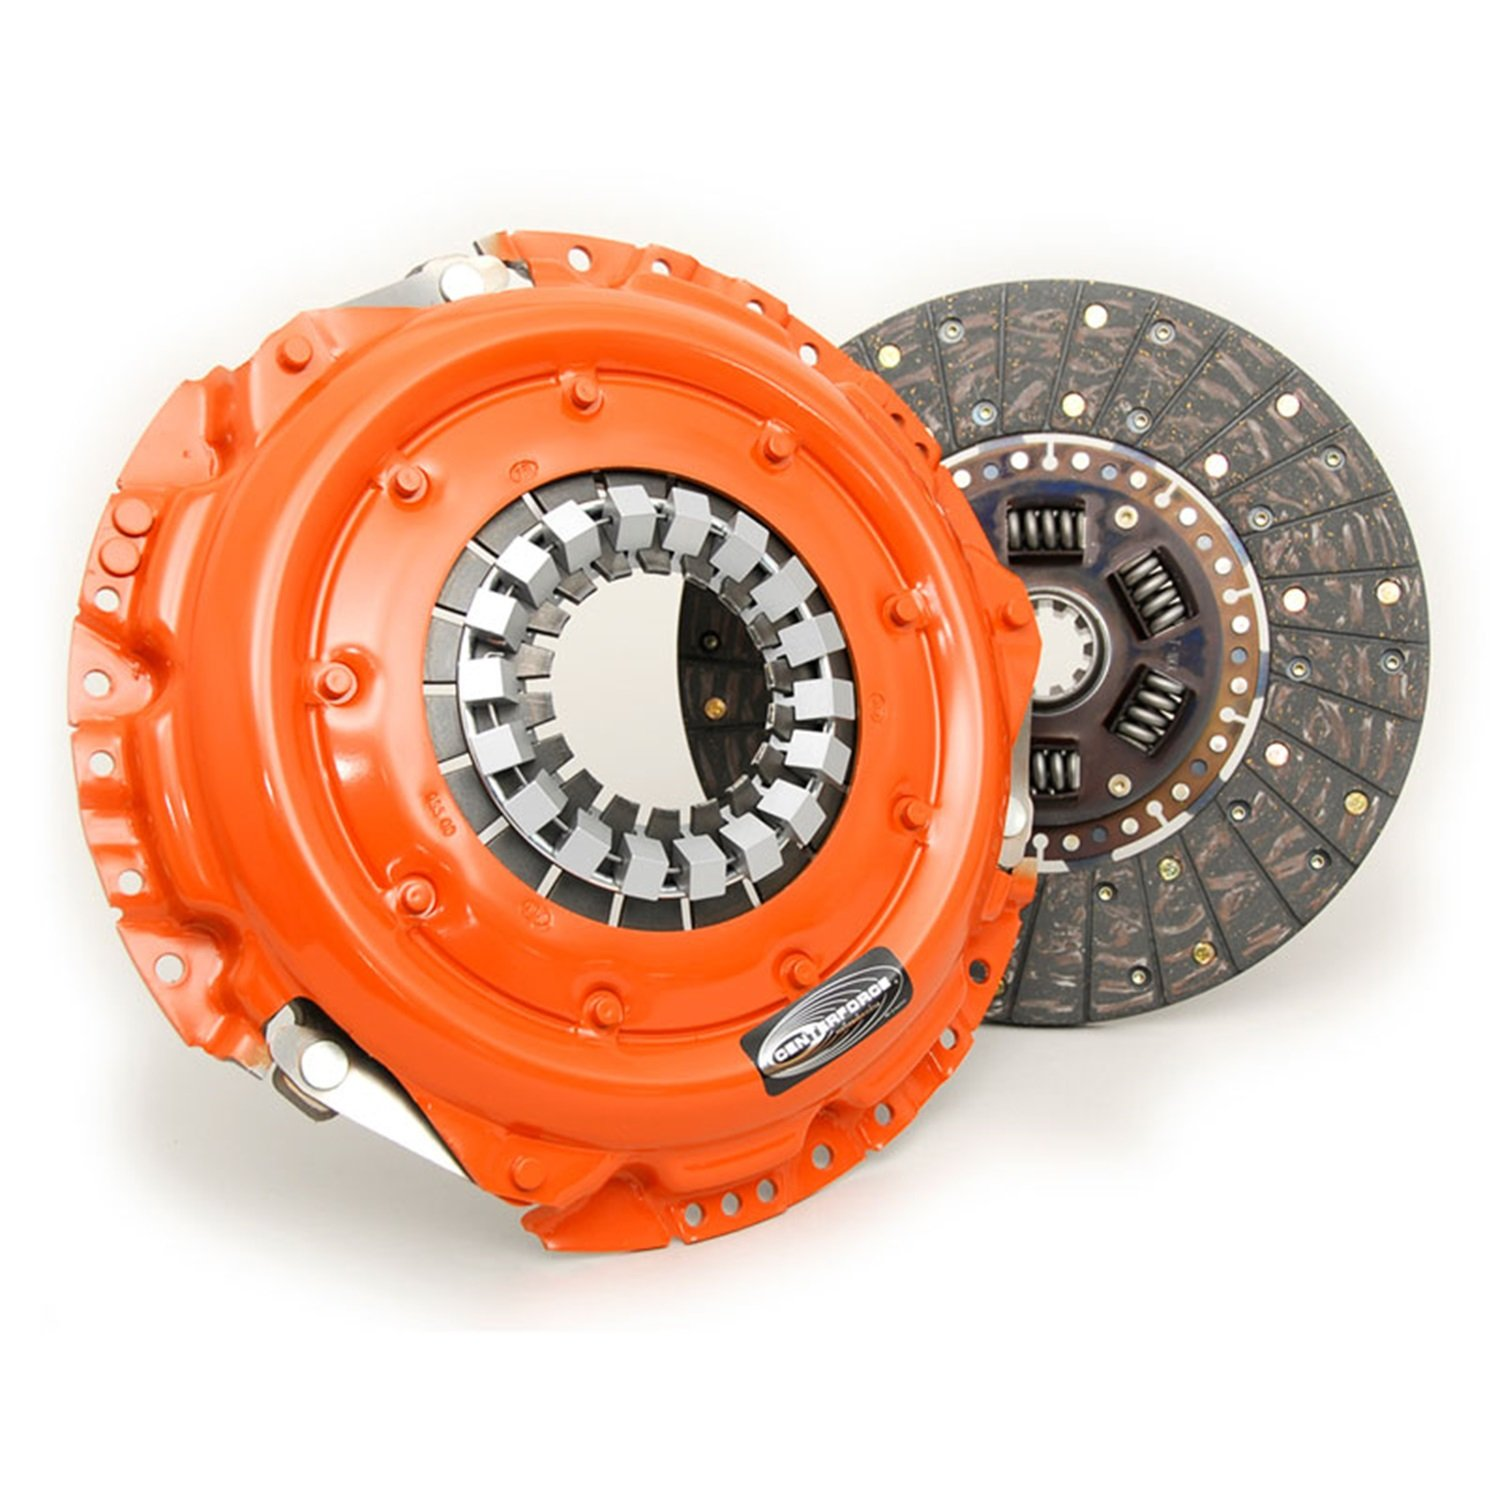 Centerforce MST559000 Series II Clutch Pressure Plate and Disc by Centerforce